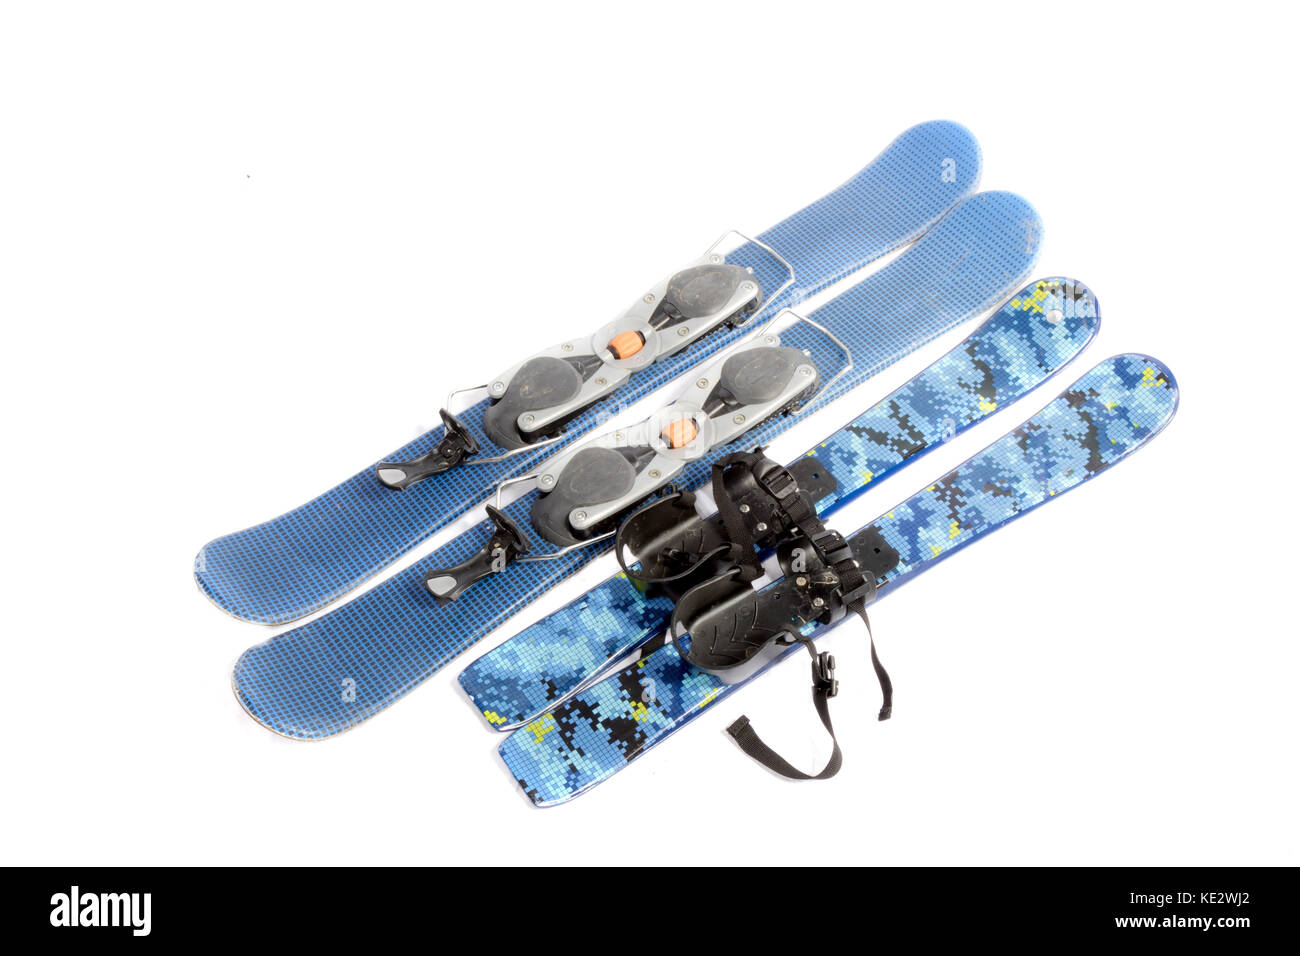 Ski blades isolated on a white background - Stock Image